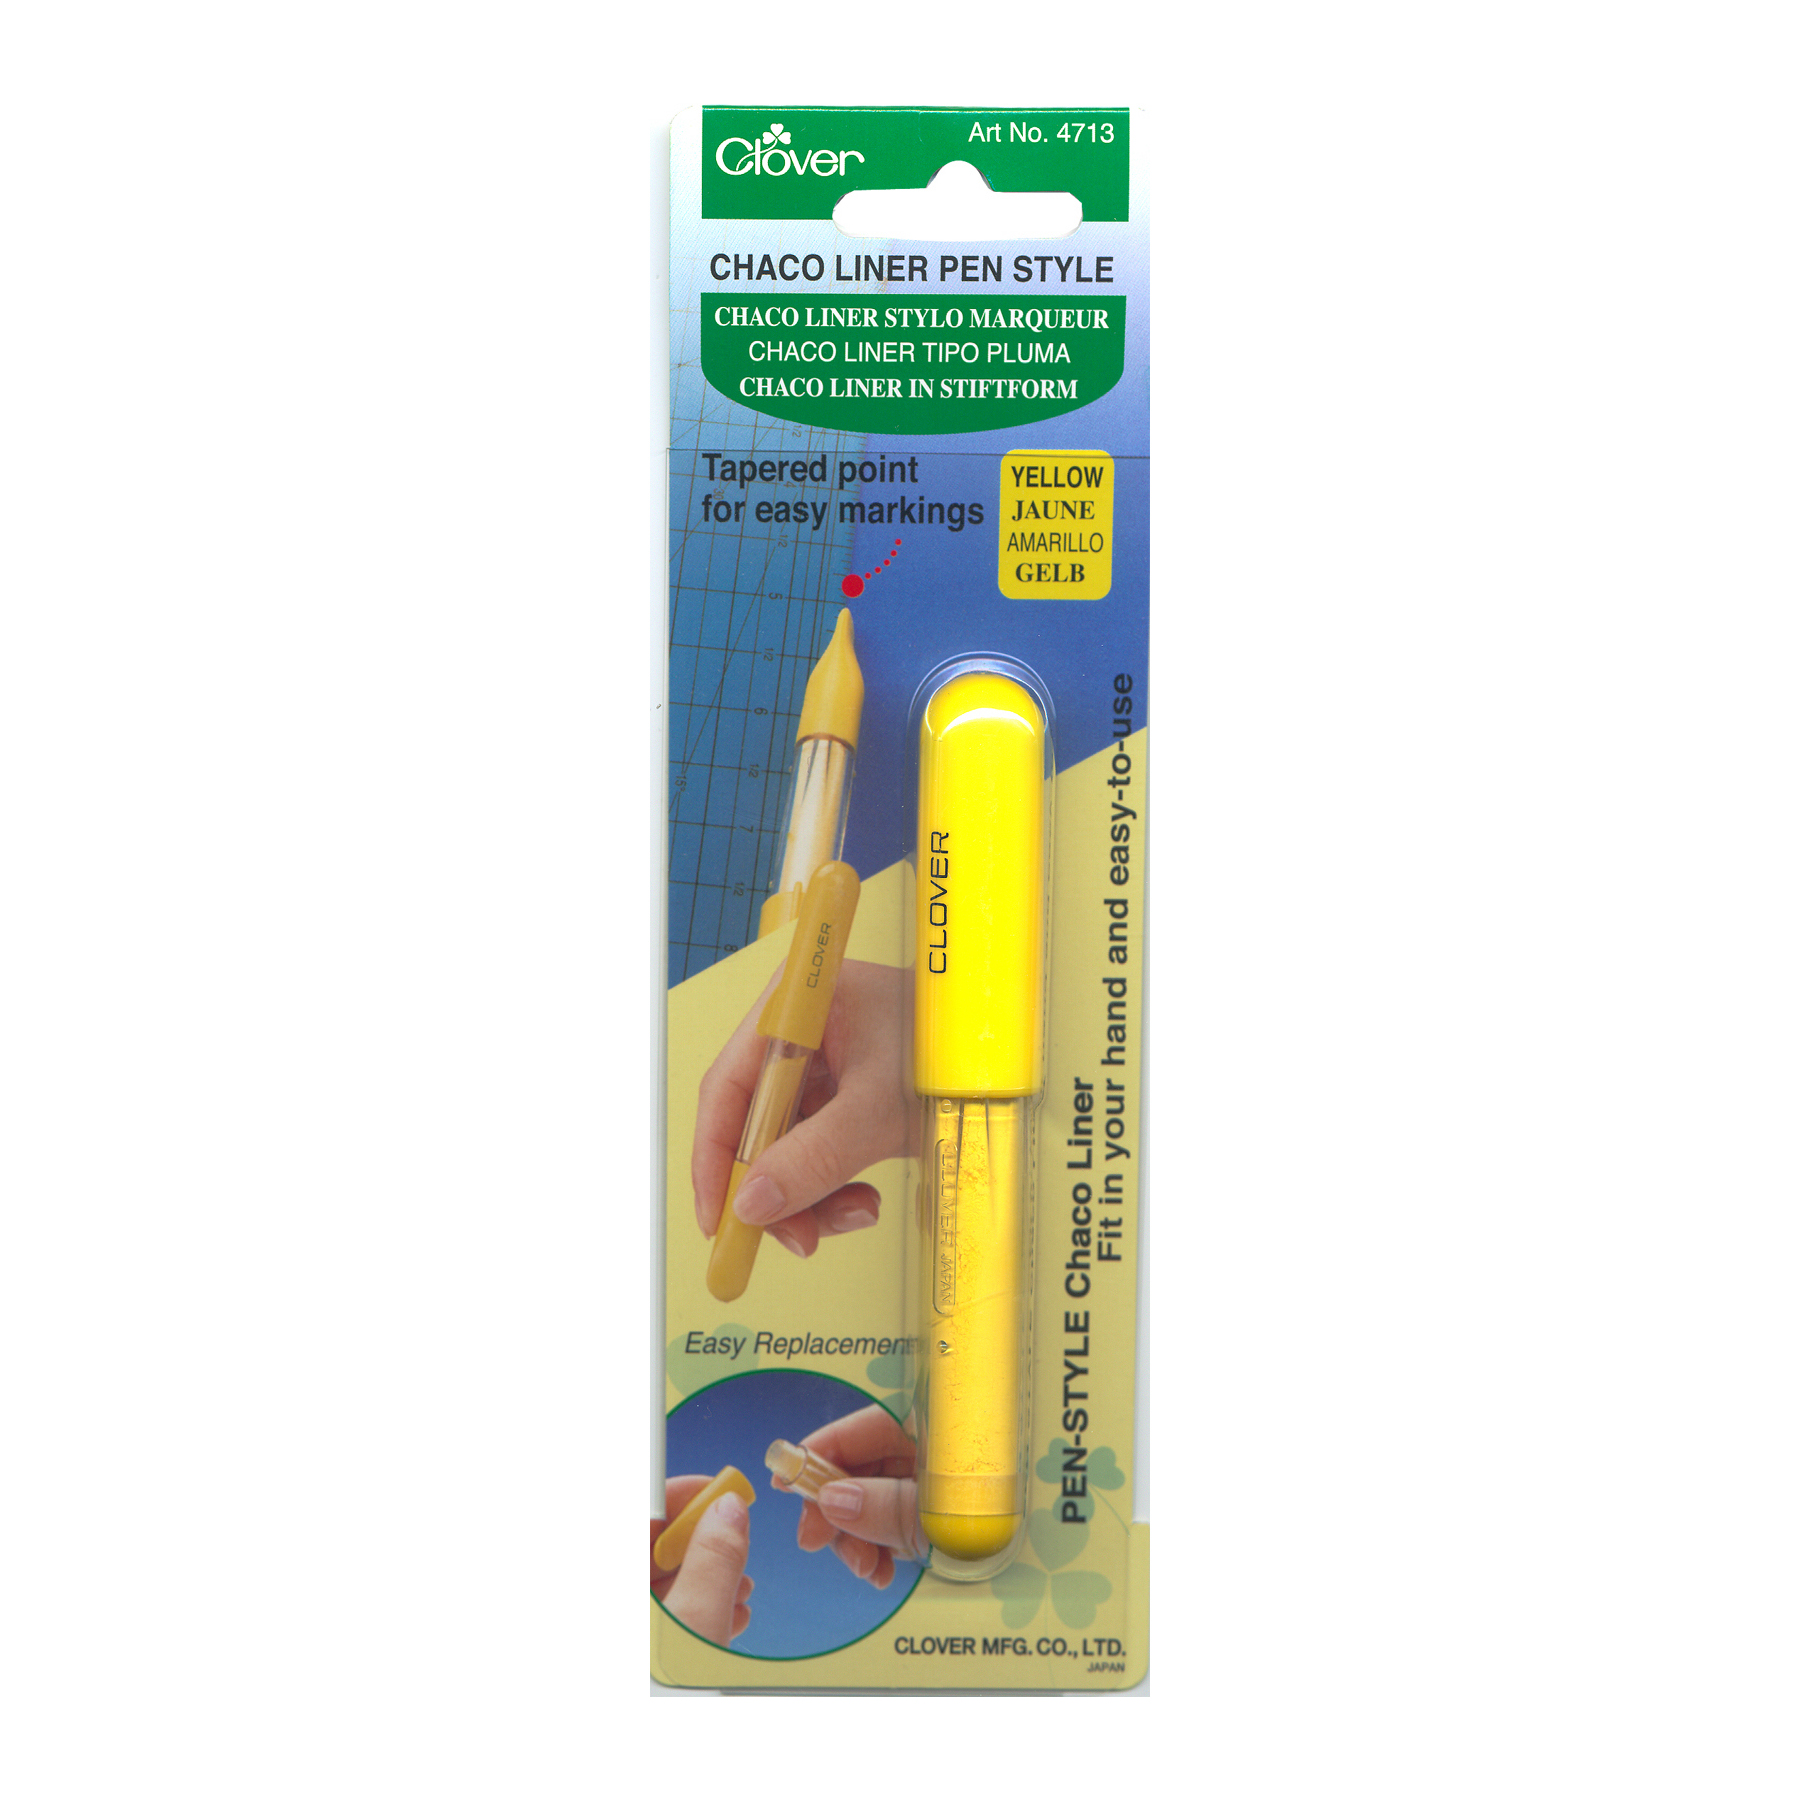 Image of Clover Chaco Liner Pen Yellow